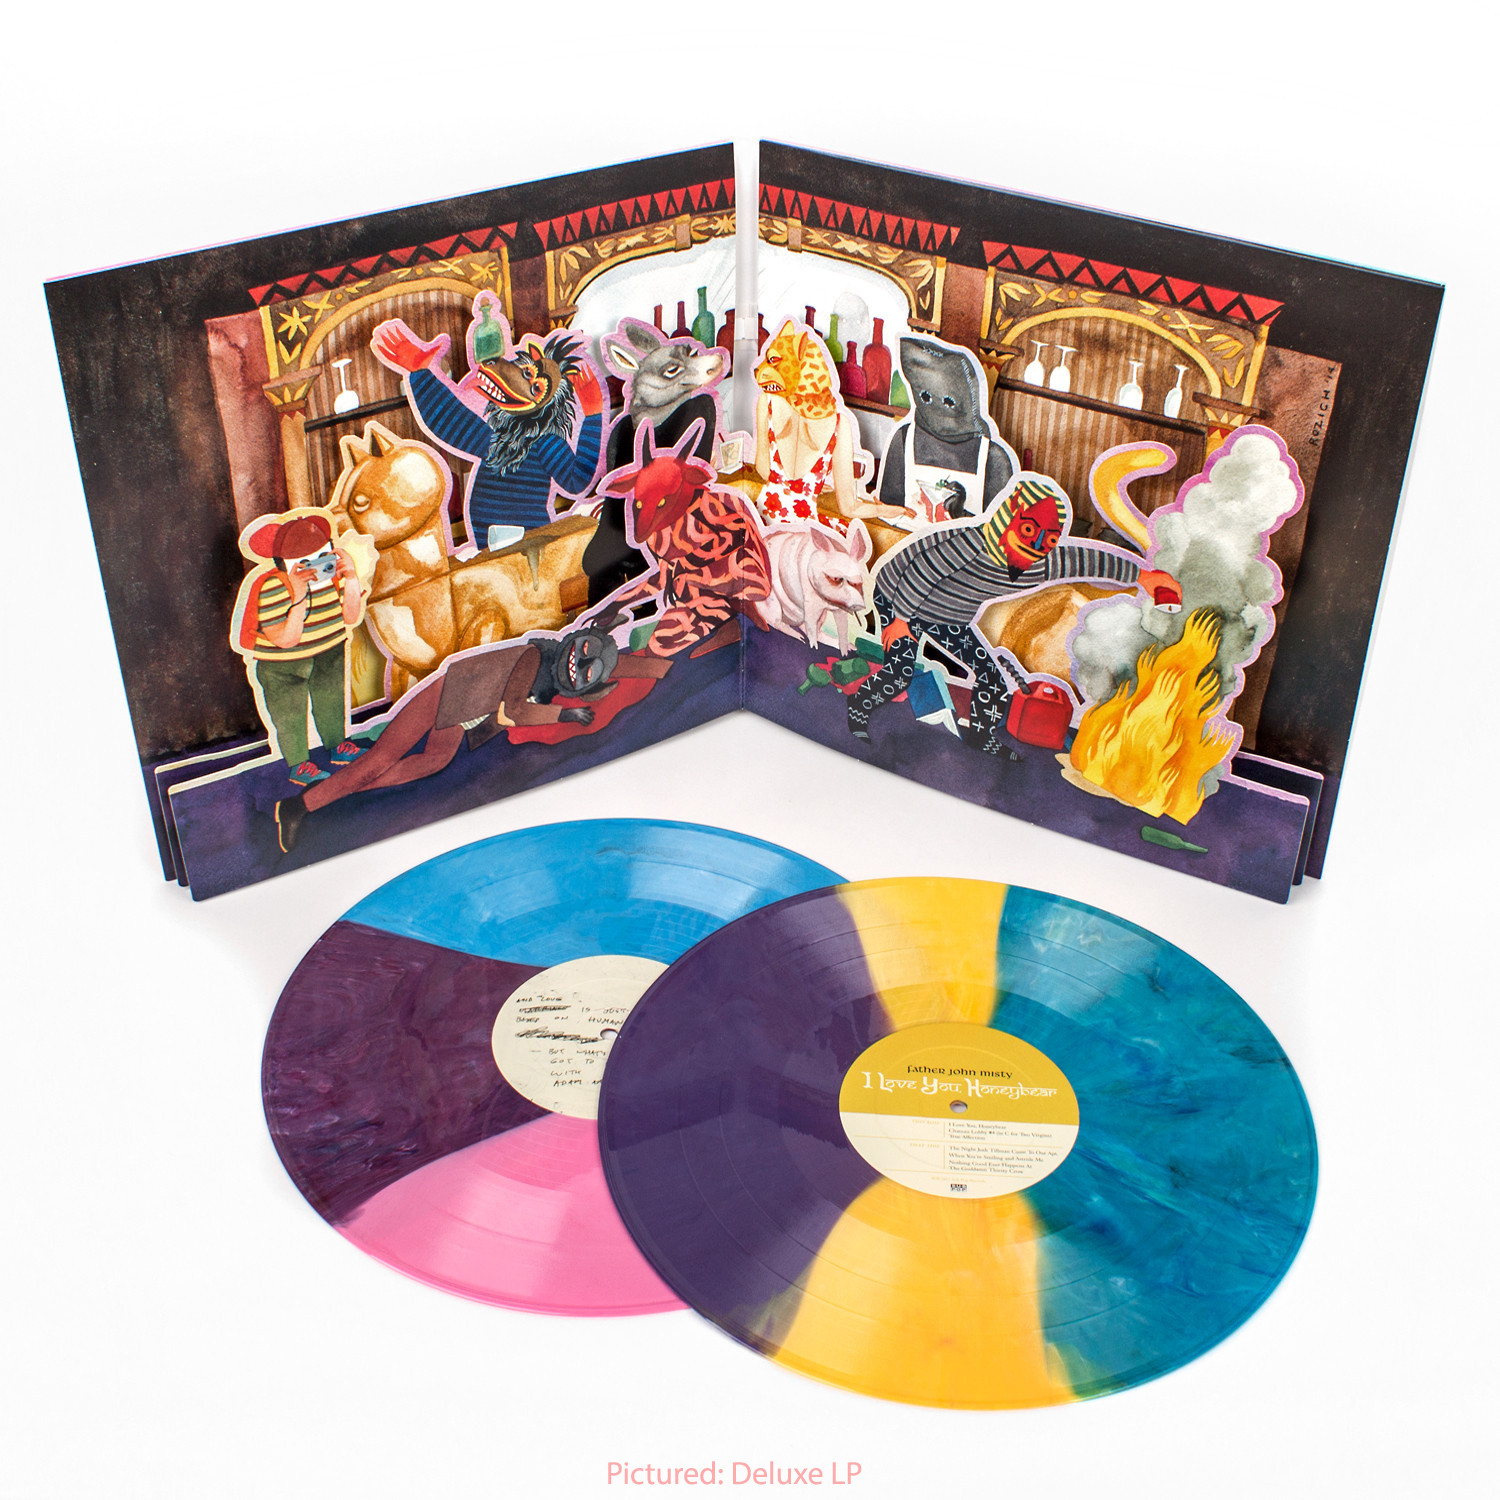 Father John Misty: I Love You, Honeybear Deluxe Edition